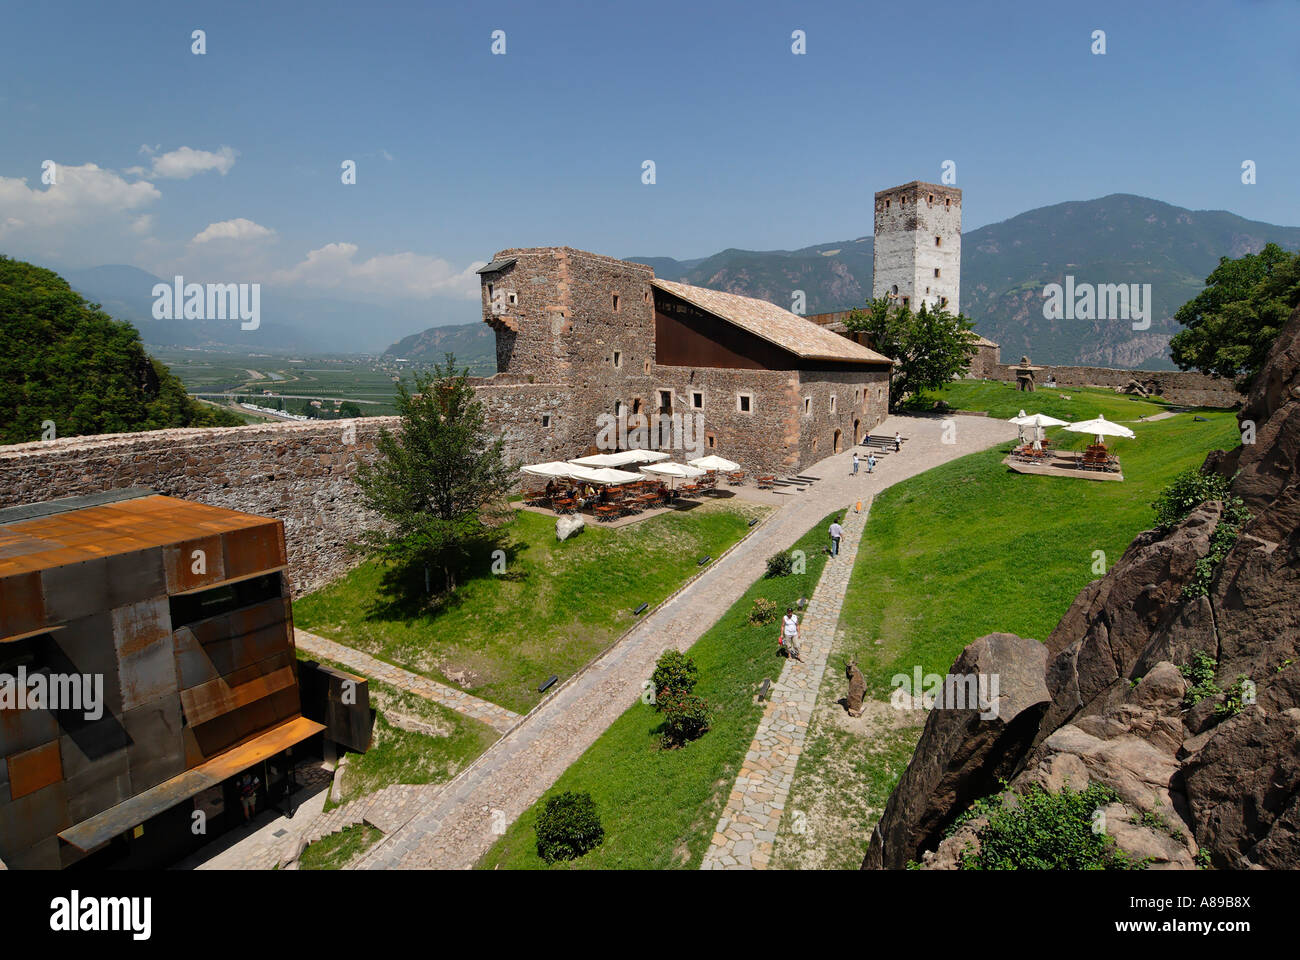 schloss sigmundskron mit dem alpinen museum von reinhold messner messner mountain museum firmian. Black Bedroom Furniture Sets. Home Design Ideas